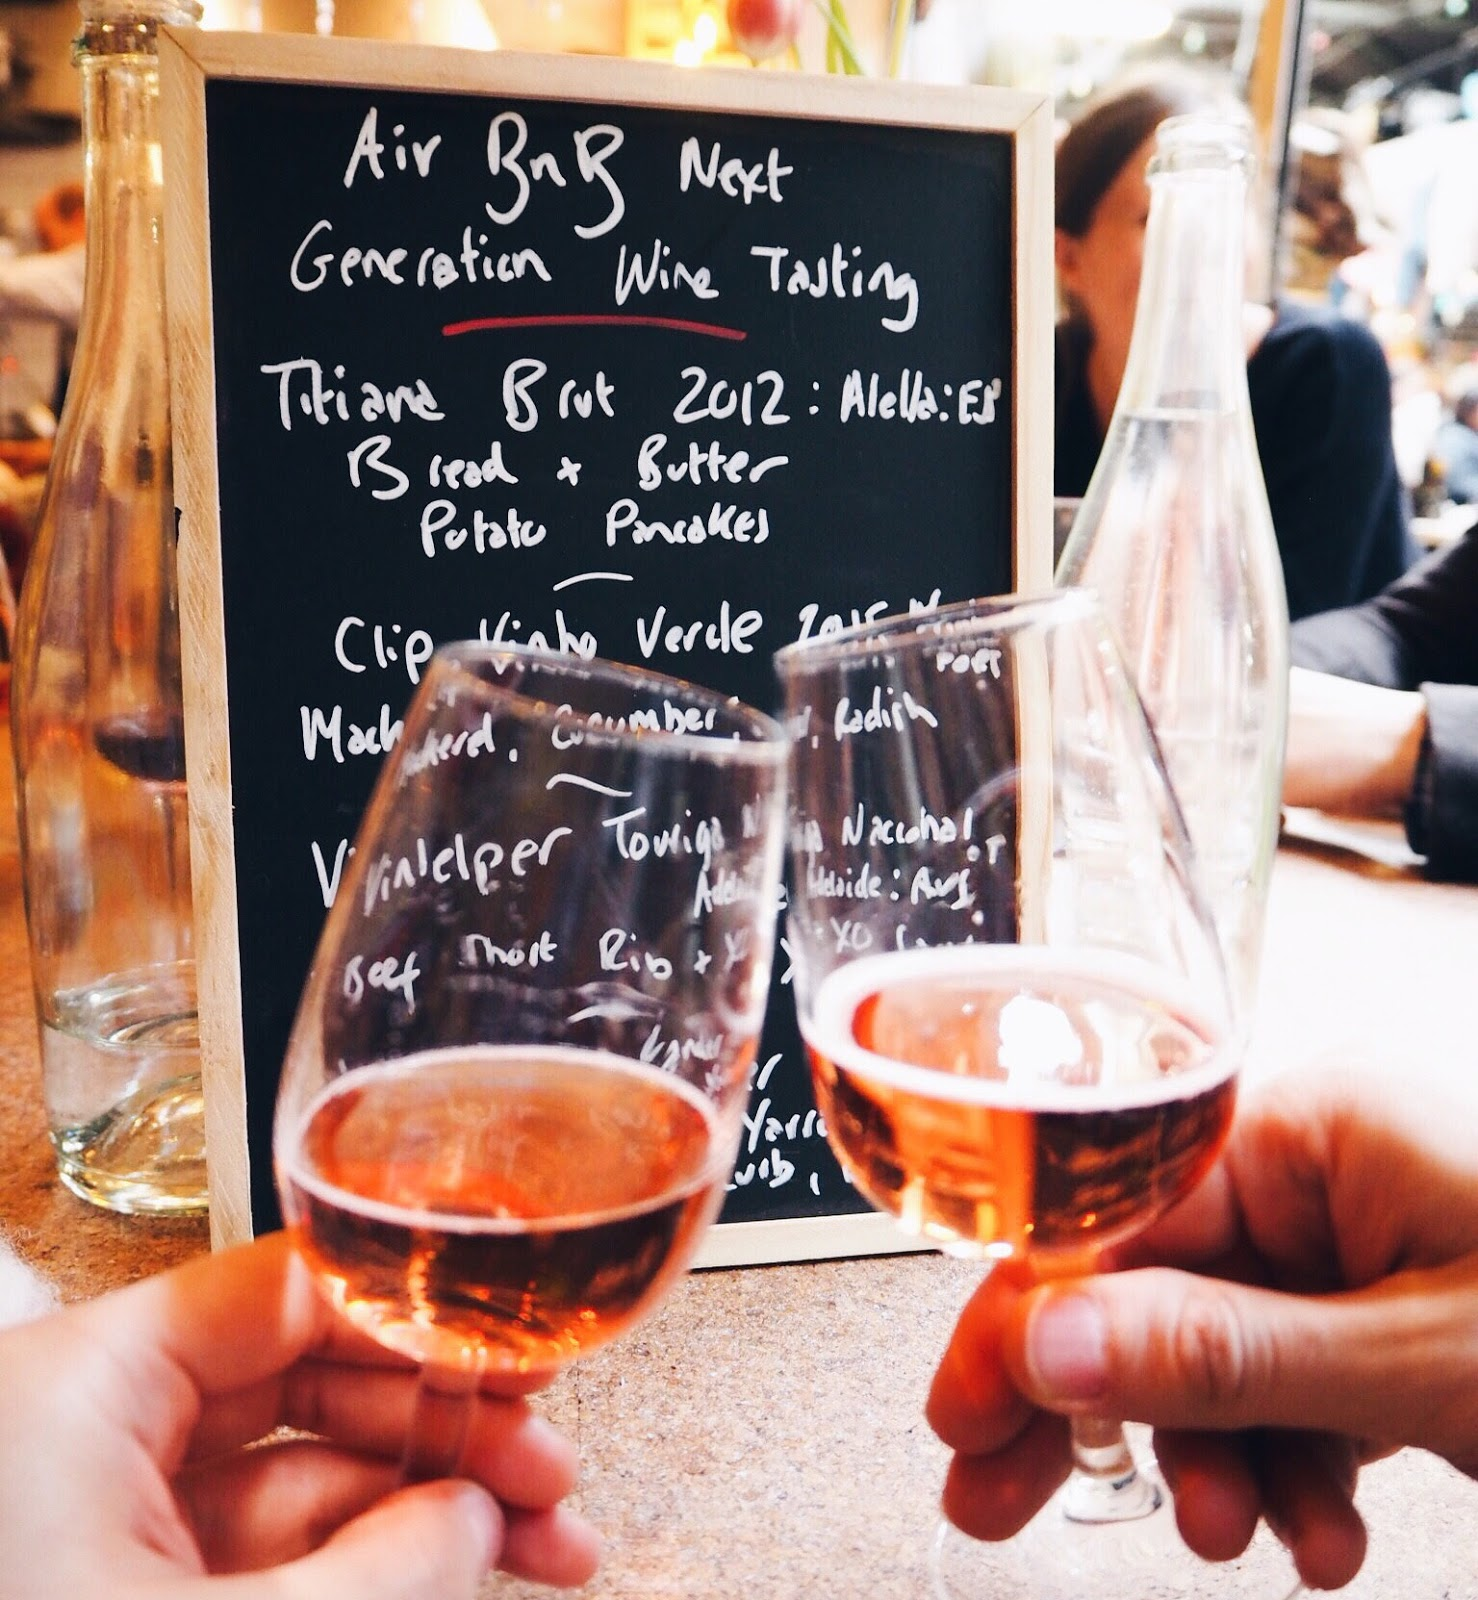 airbnb, wine tasting, london, london wine bar, lifestyle blogger, uk blogger, airbnb experiences